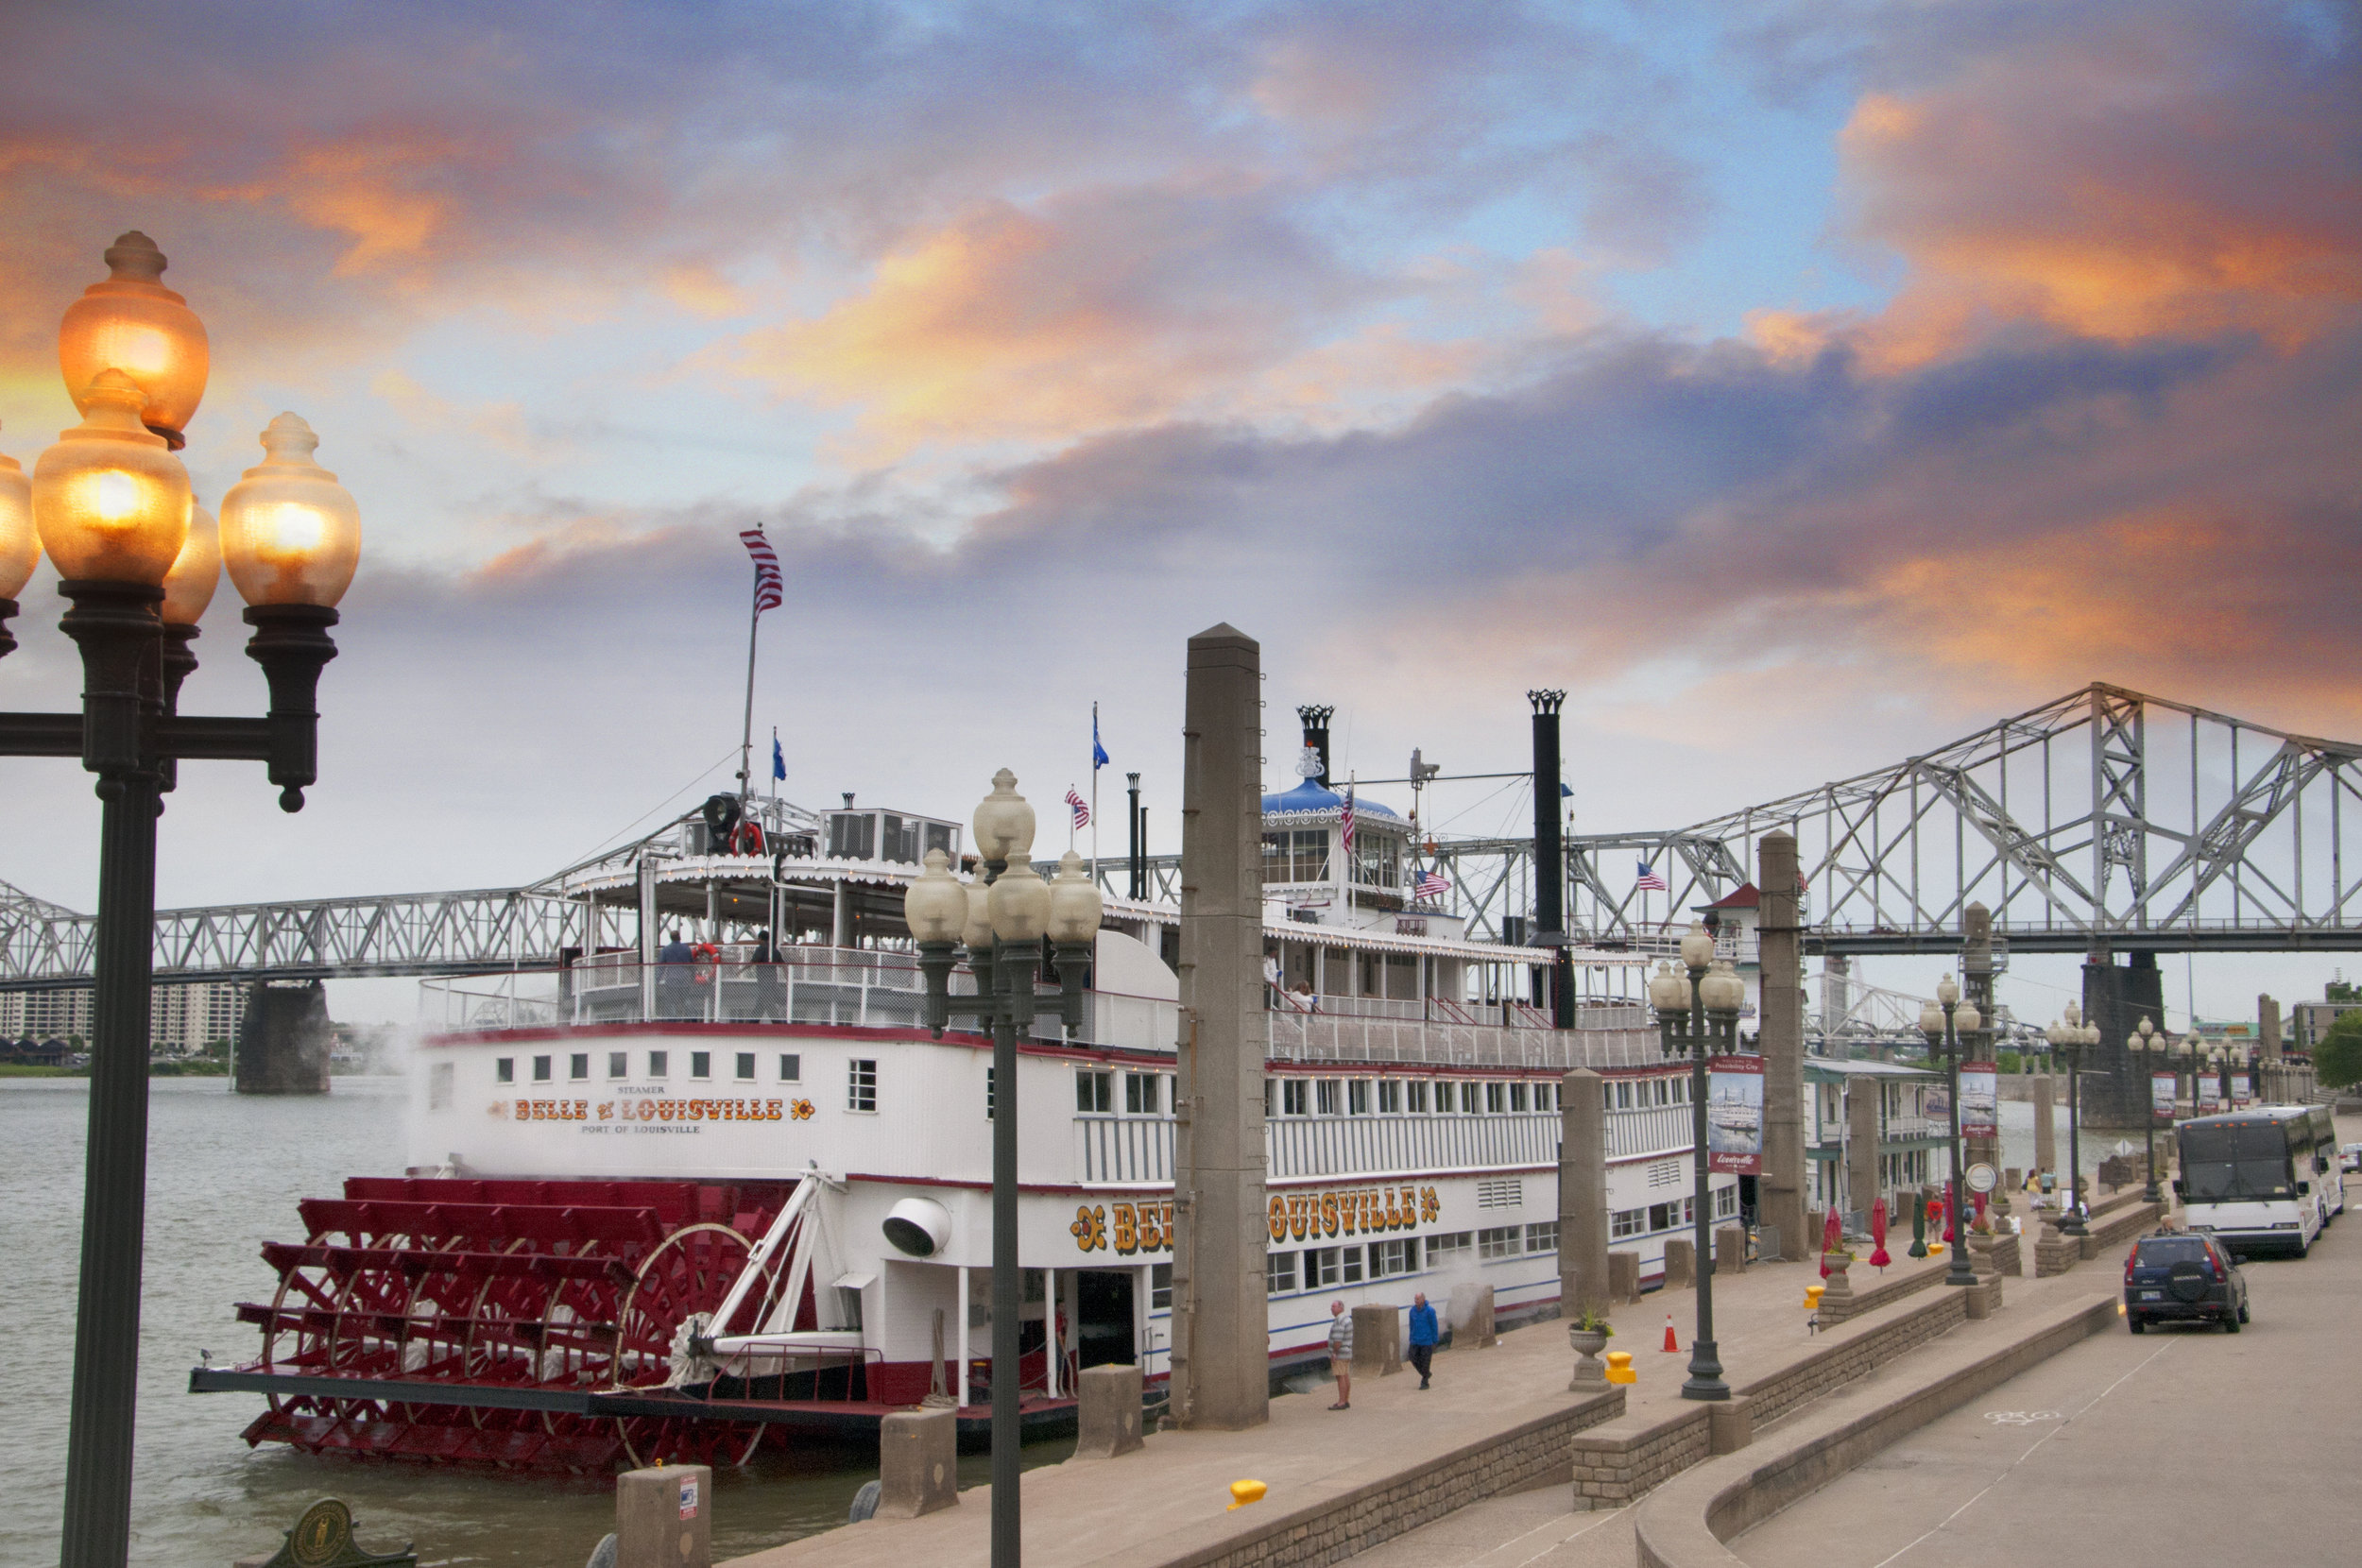 Louisville-45271719_xxl-Paddlesteamer-Riverboat-on-the-River-Ohio-in-Louisville-Kentucky.jpg